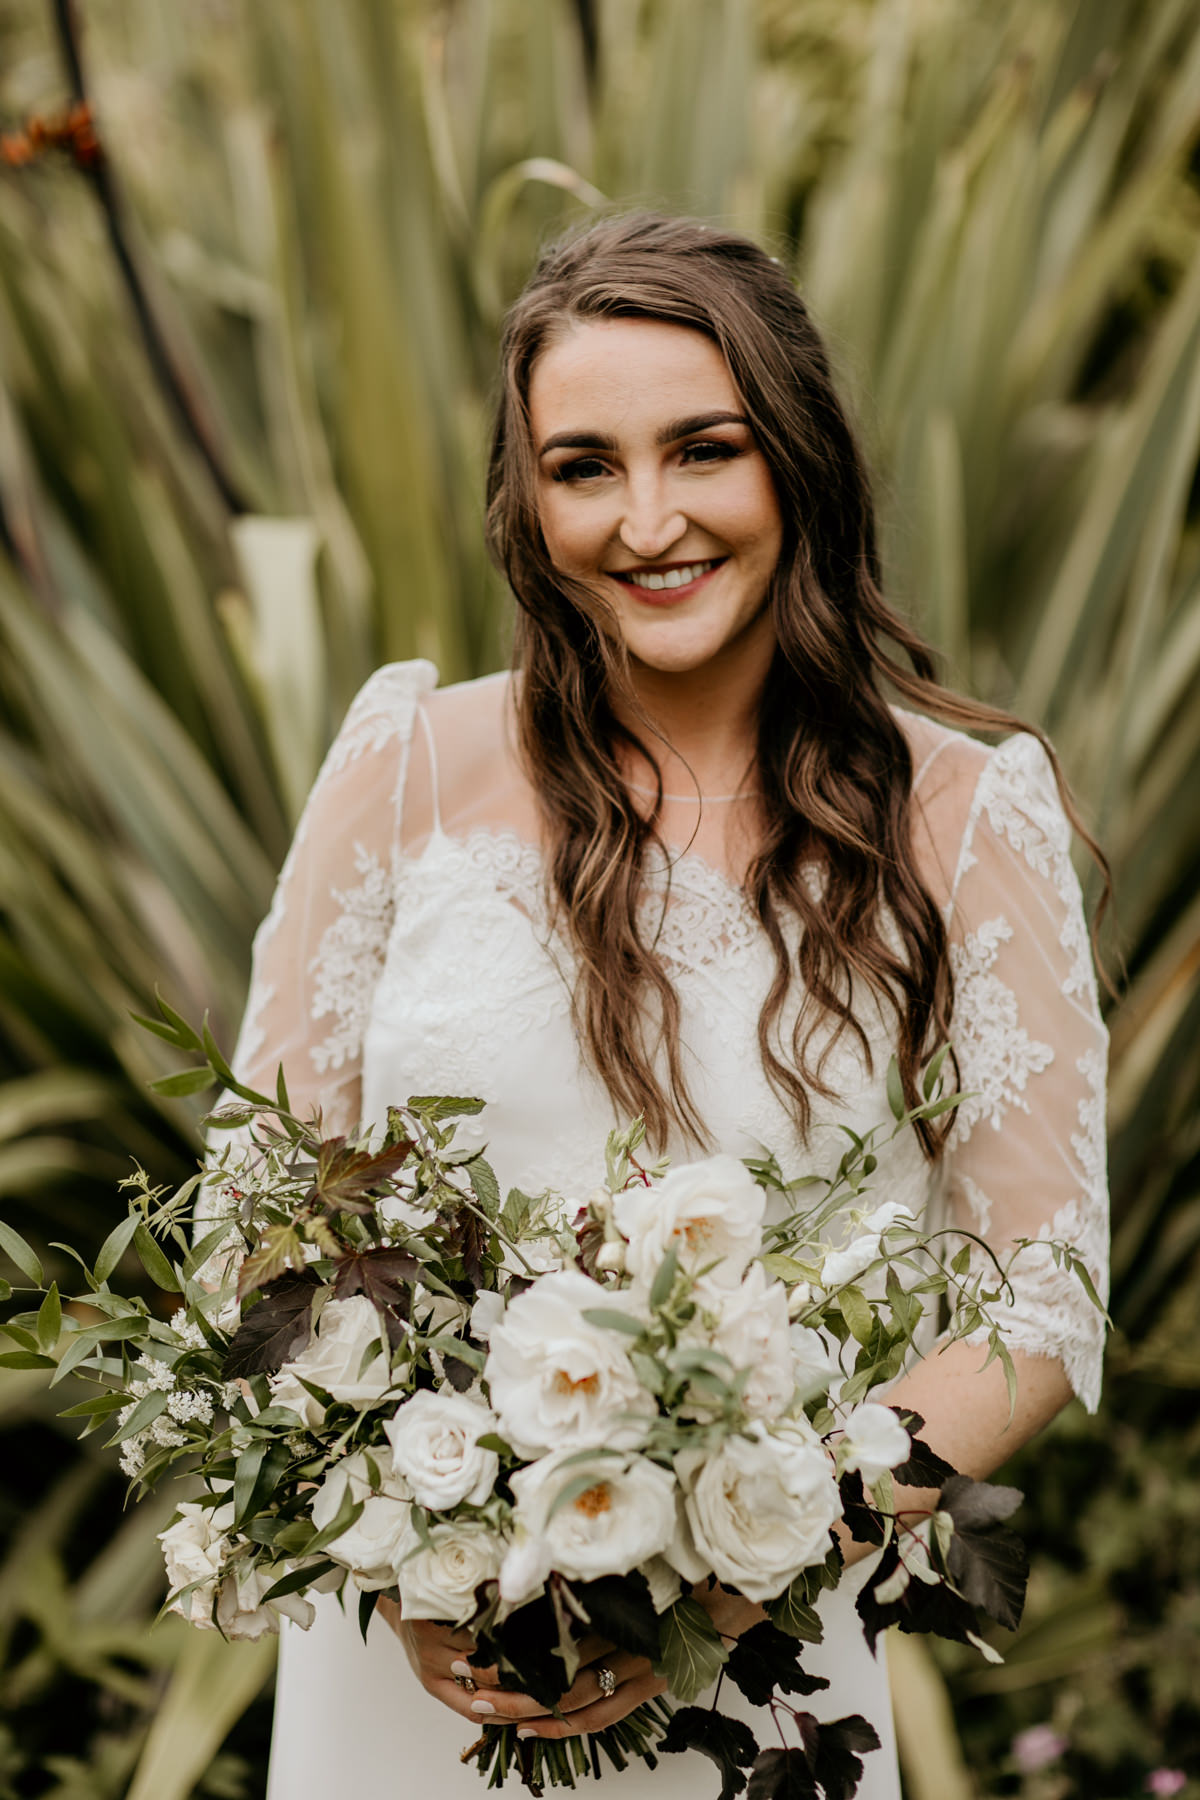 bride portraits with white and green flowers by Gloucesterhire wedding photographer